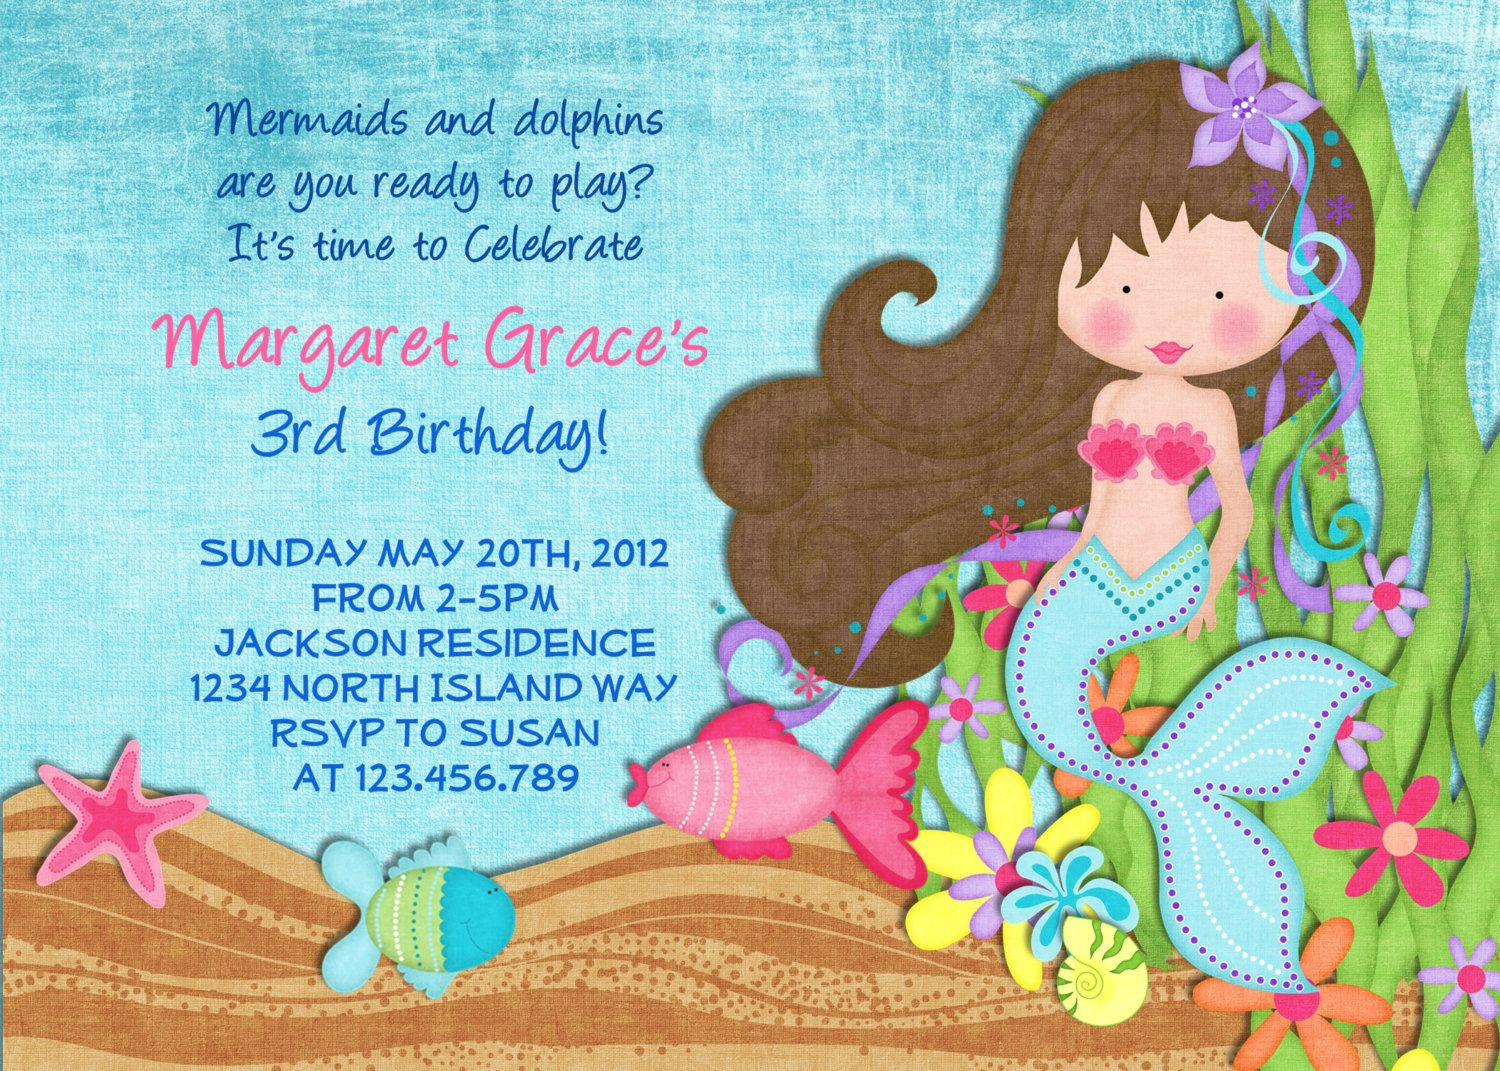 Mermaid Party Invitations Australia